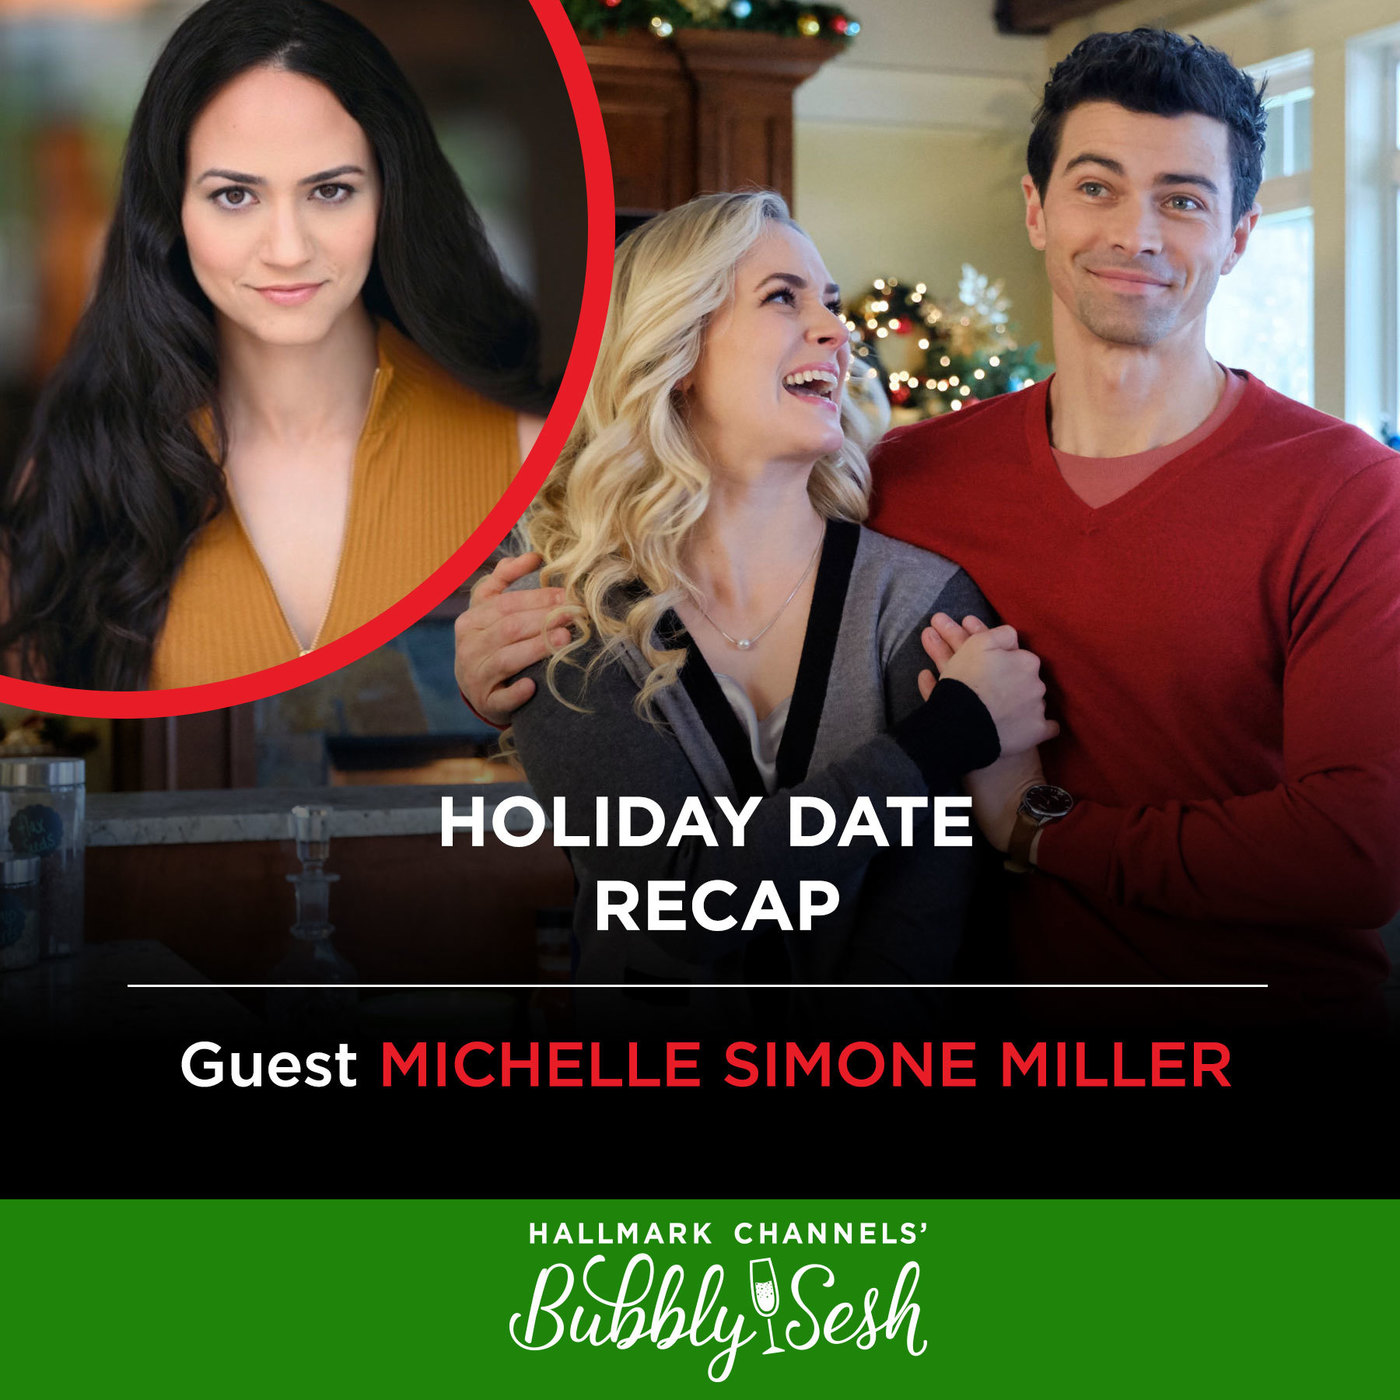 Holiday Date Recap with Michelle Simone Miller